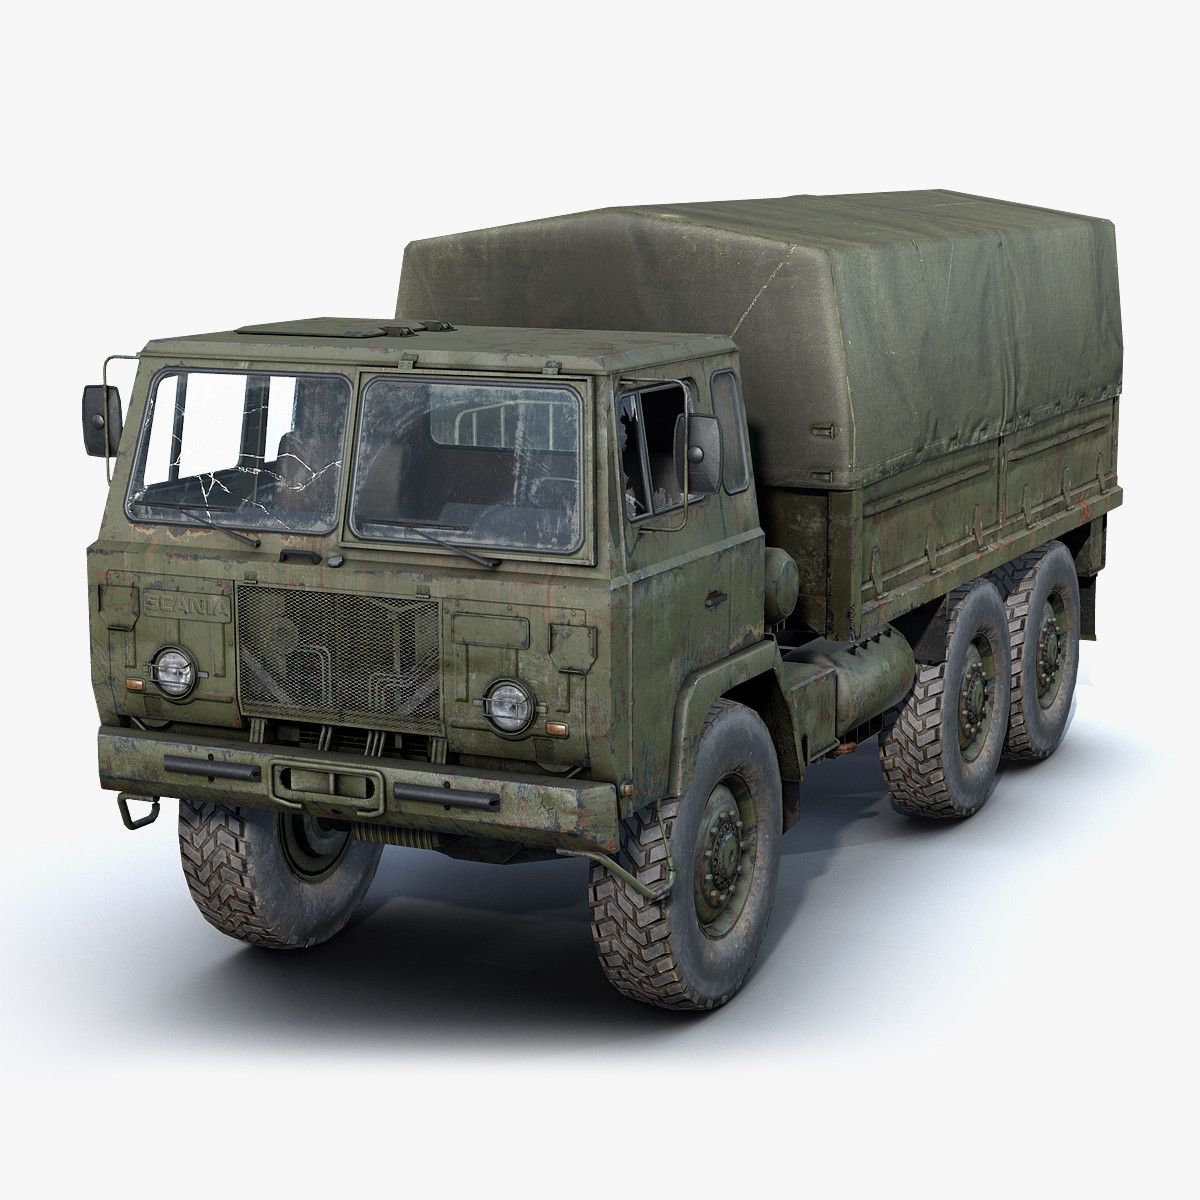 Game lowpoly 3dmodel of rusty army truck SaabScania SBA